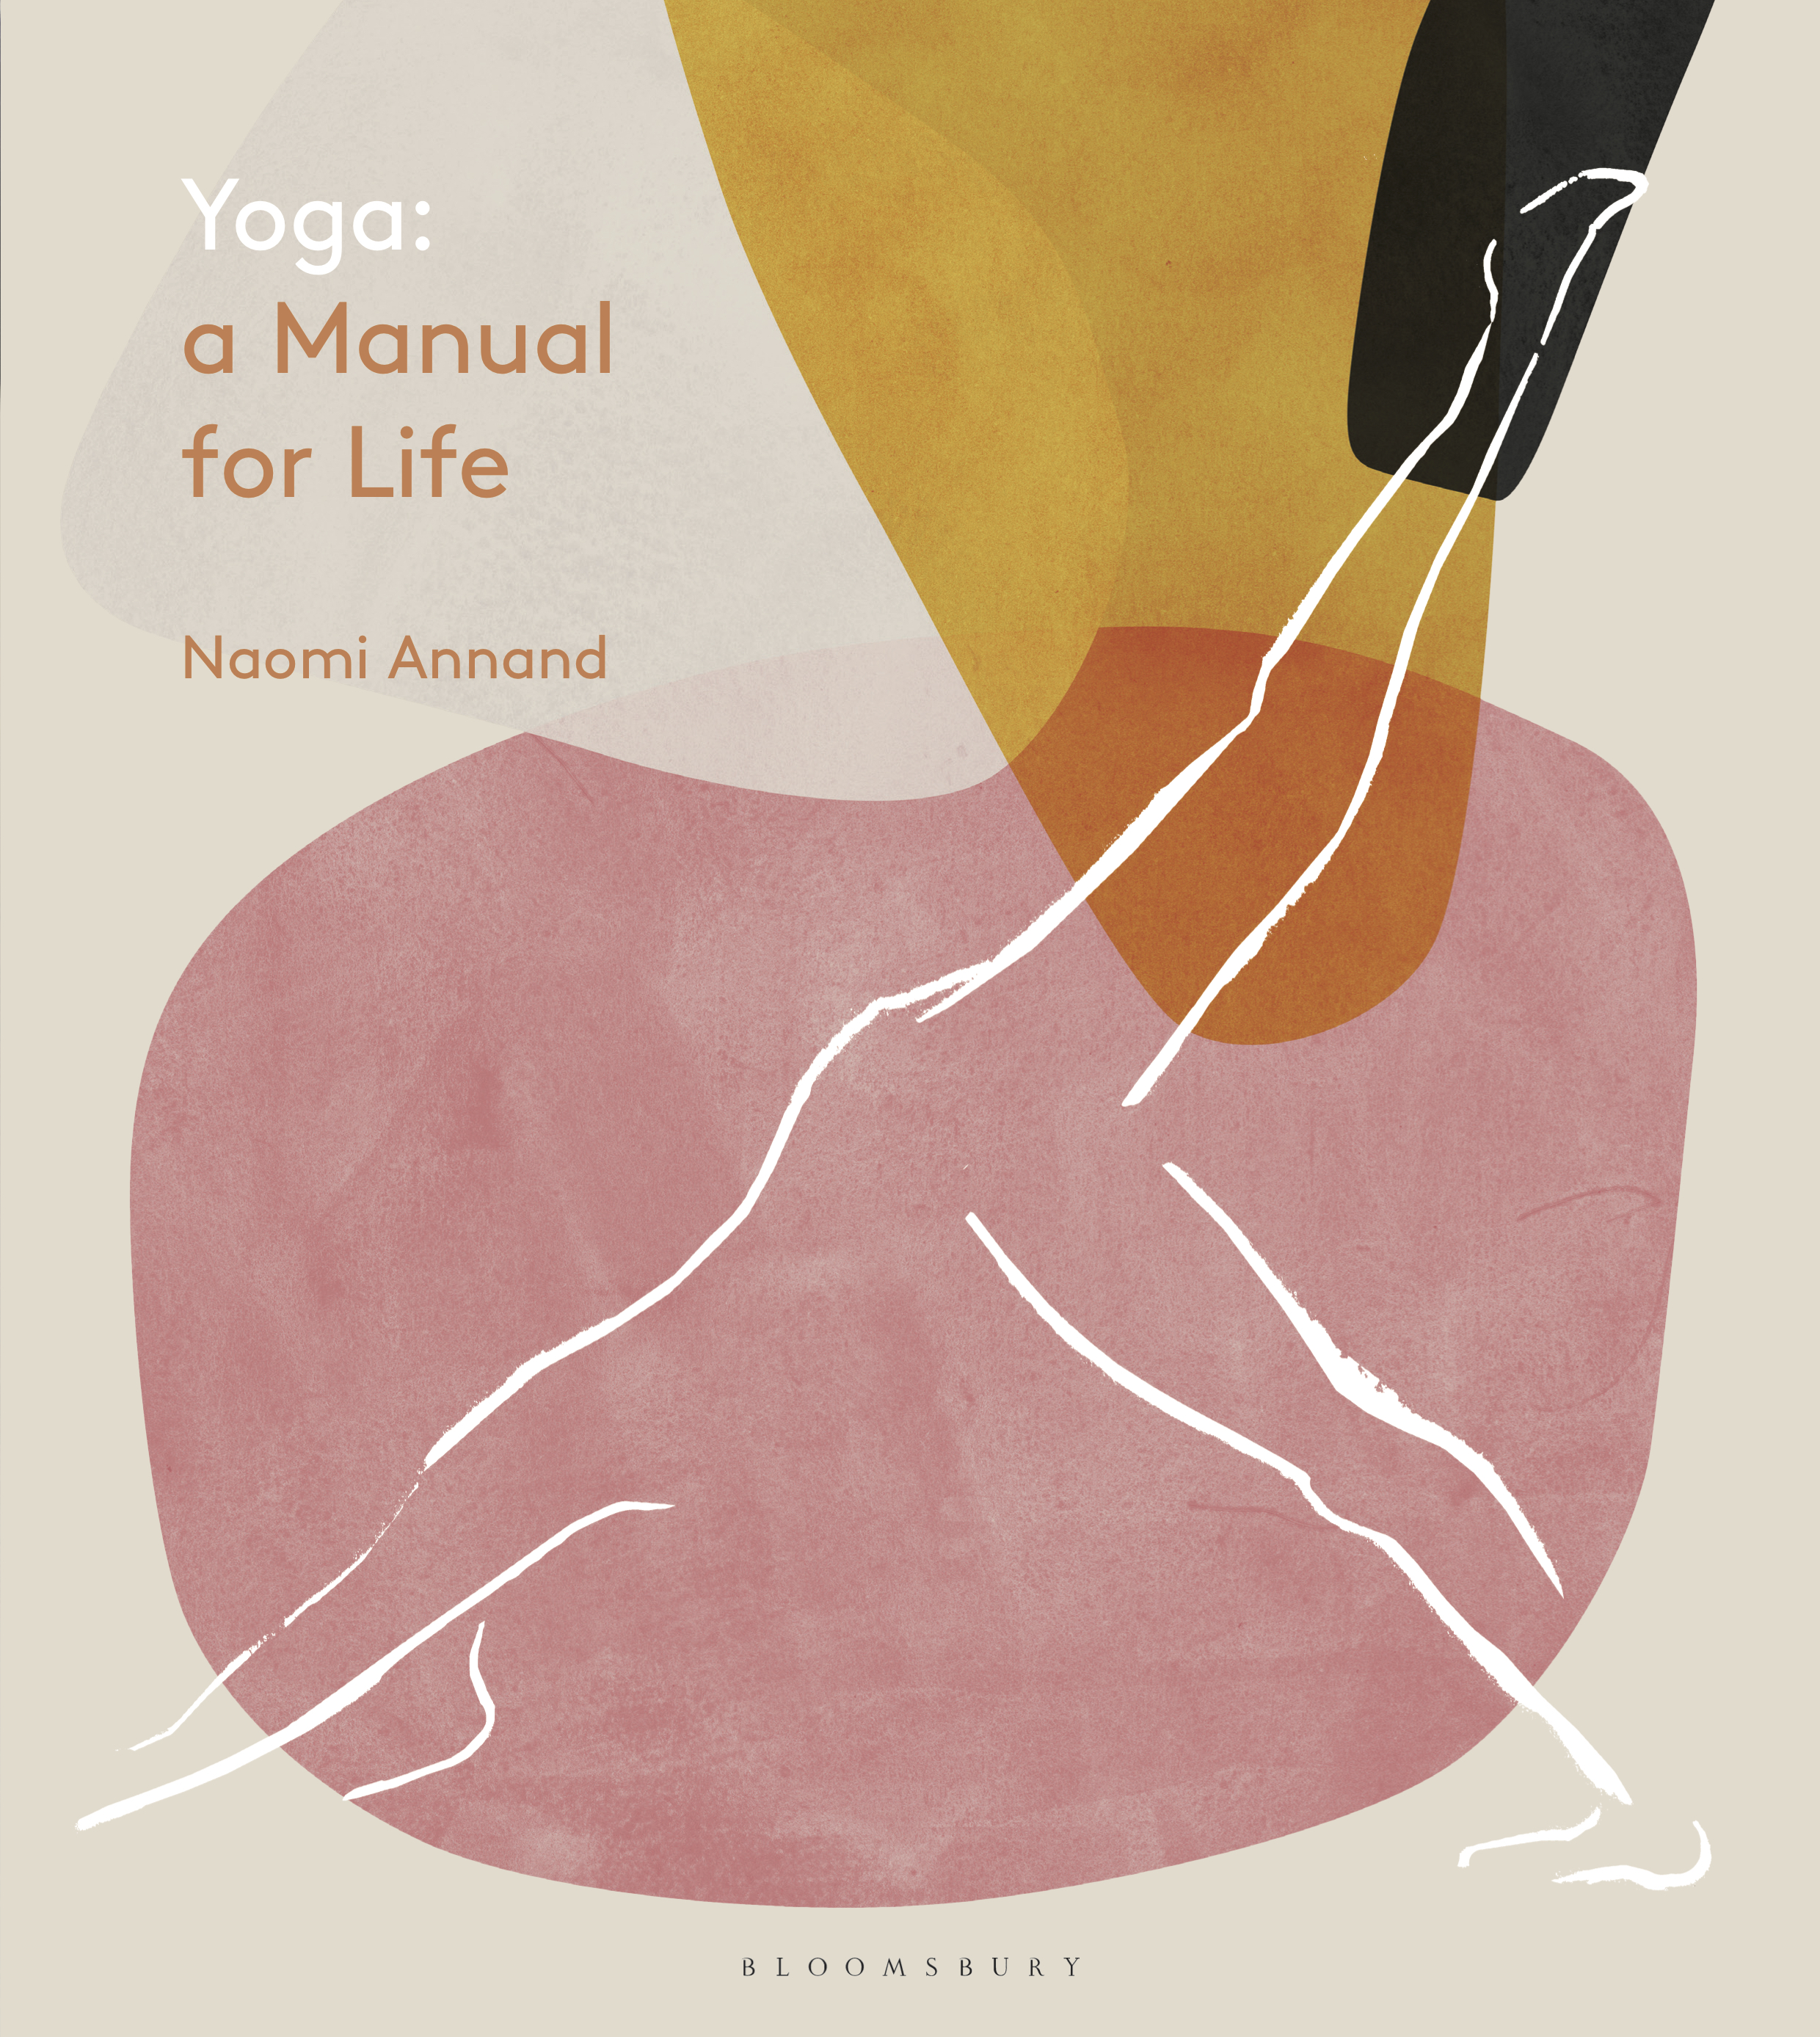 Yoga A Manual for Life.jpg